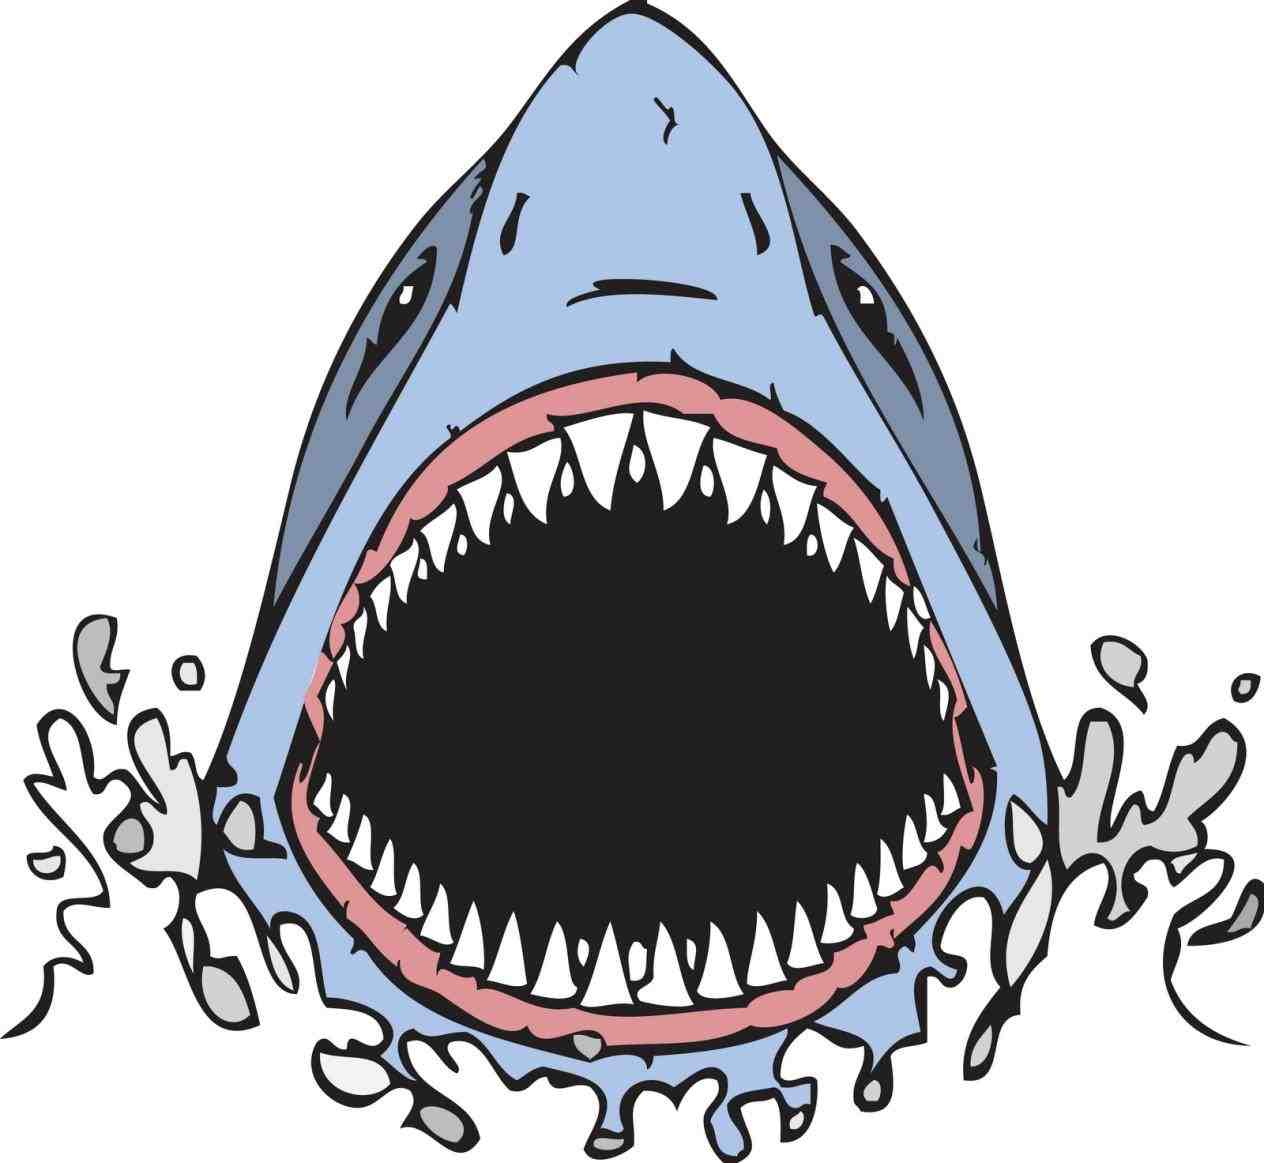 smiling shark clipart › copay.online.